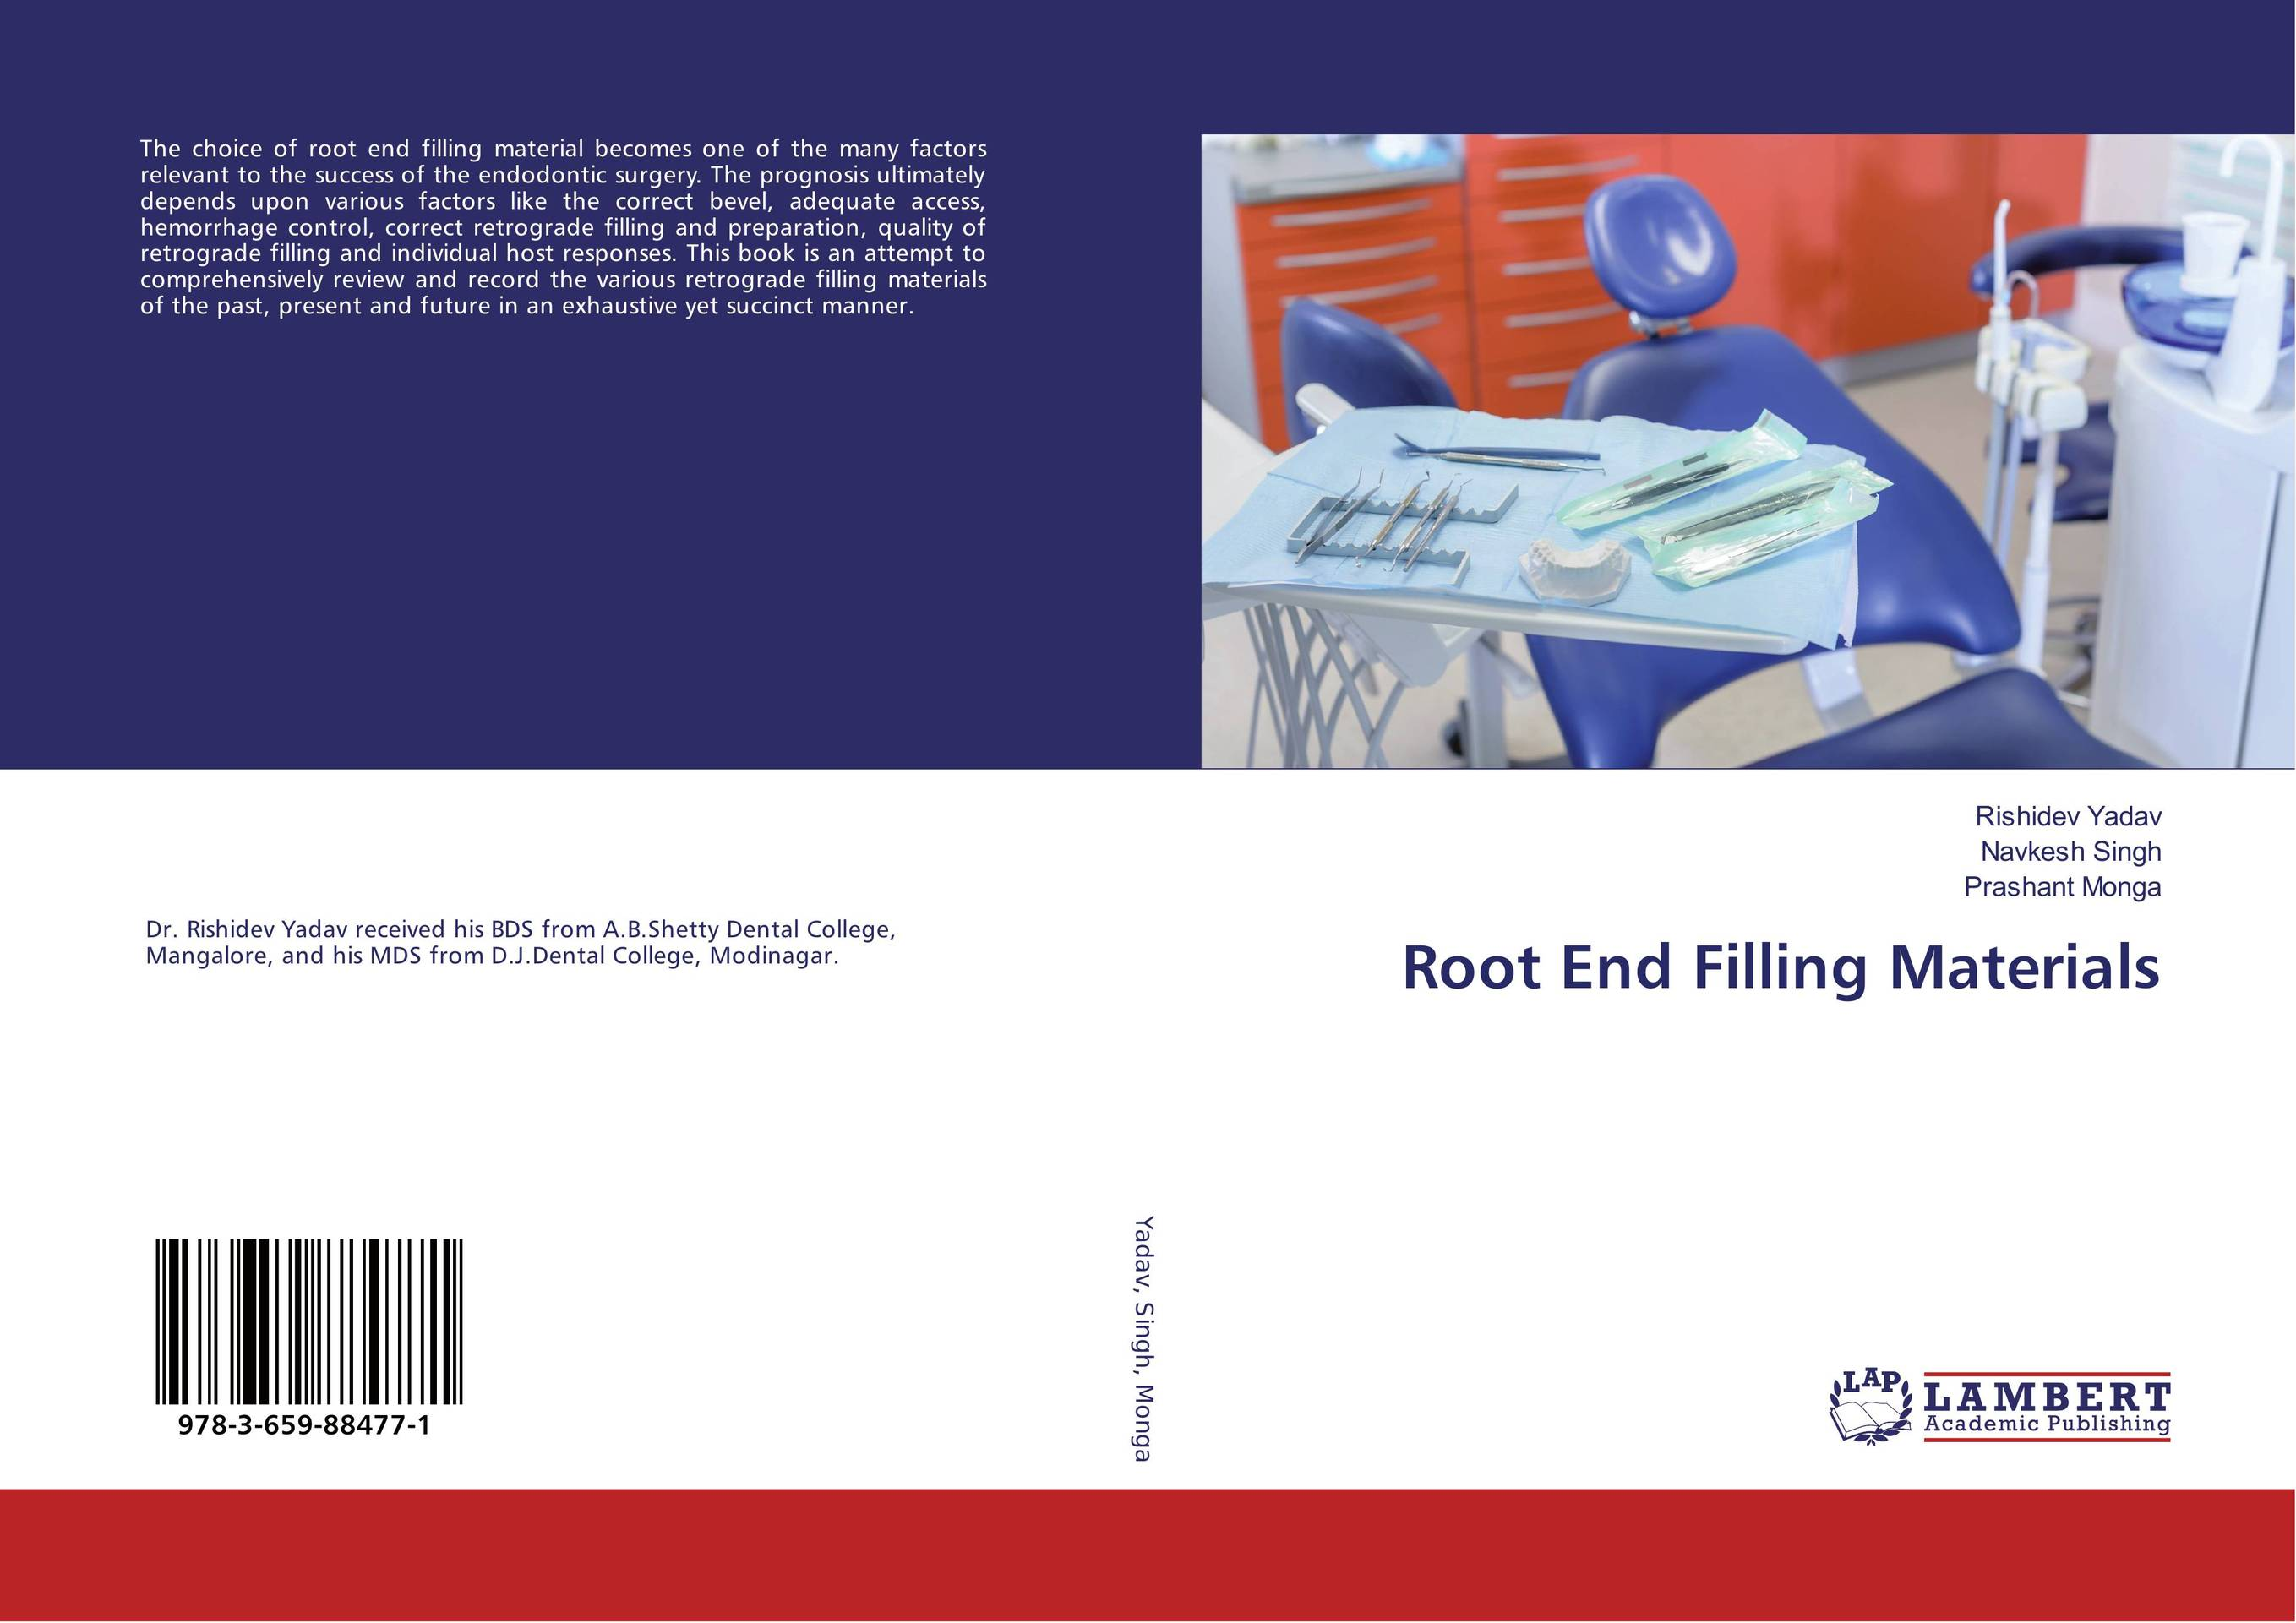 Root End Filling Materials the teeth with root canal students to practice root canal preparation and filling actually